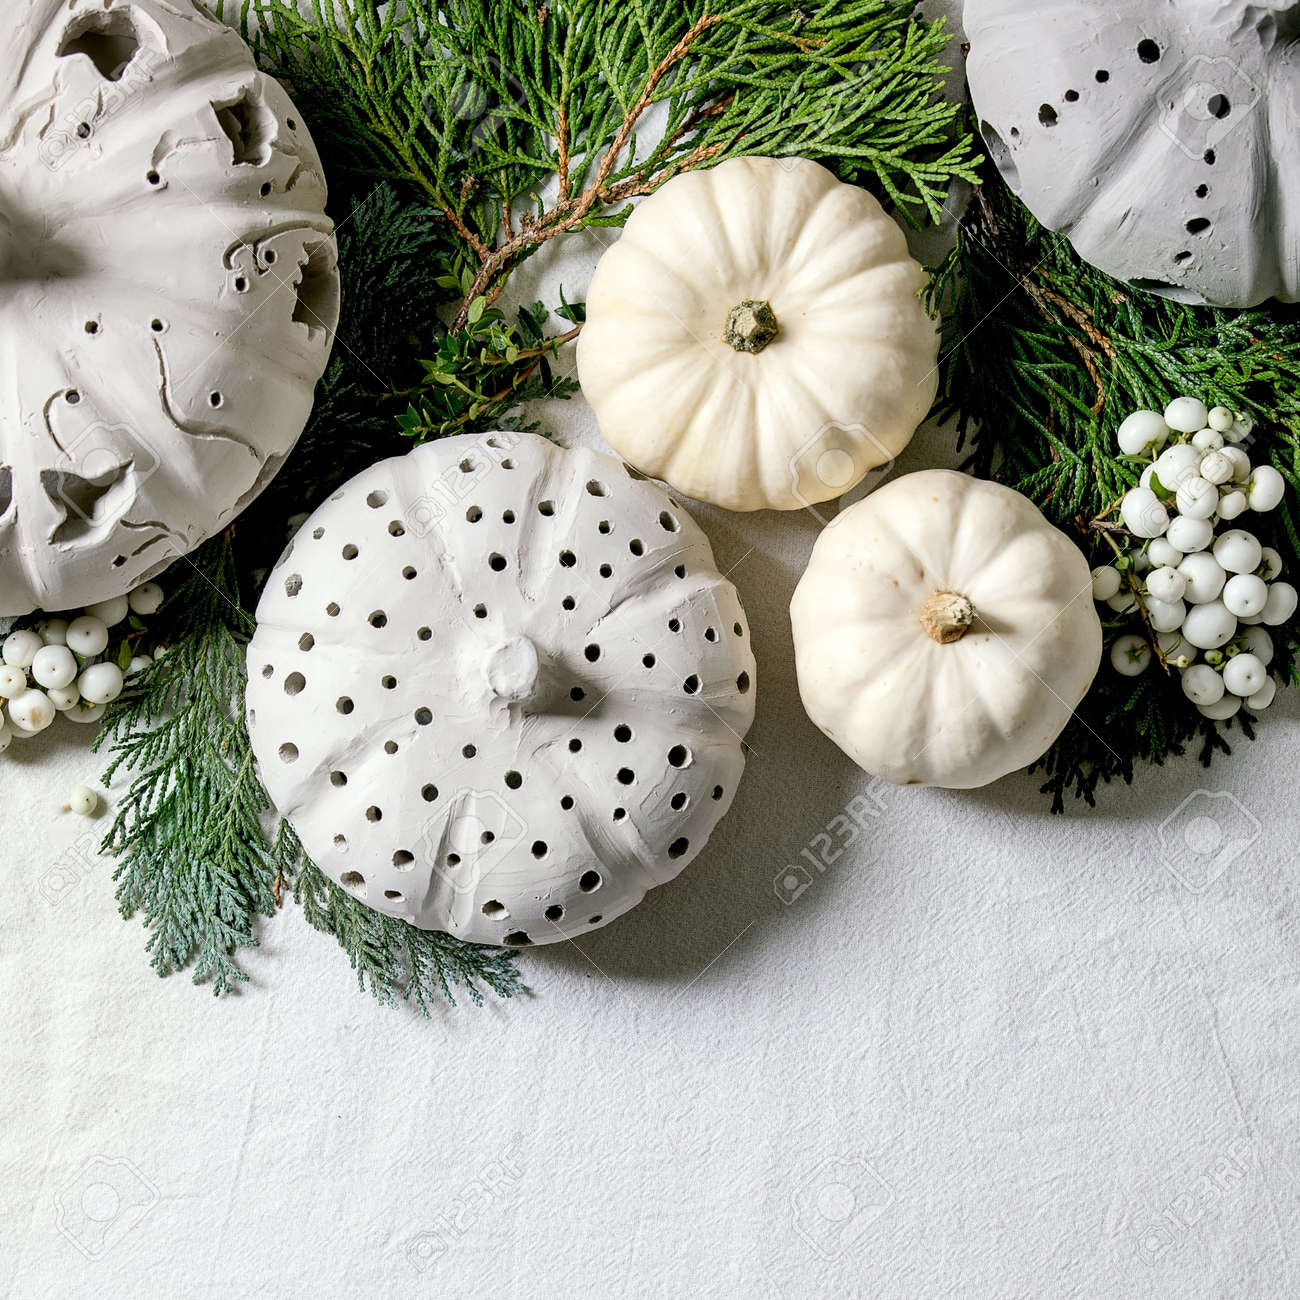 Holiday decoration with white decorative pumpkins, craft clay pumpkins, thuja branches over old wooden background. Flat lay, copy space. Square - 173053853